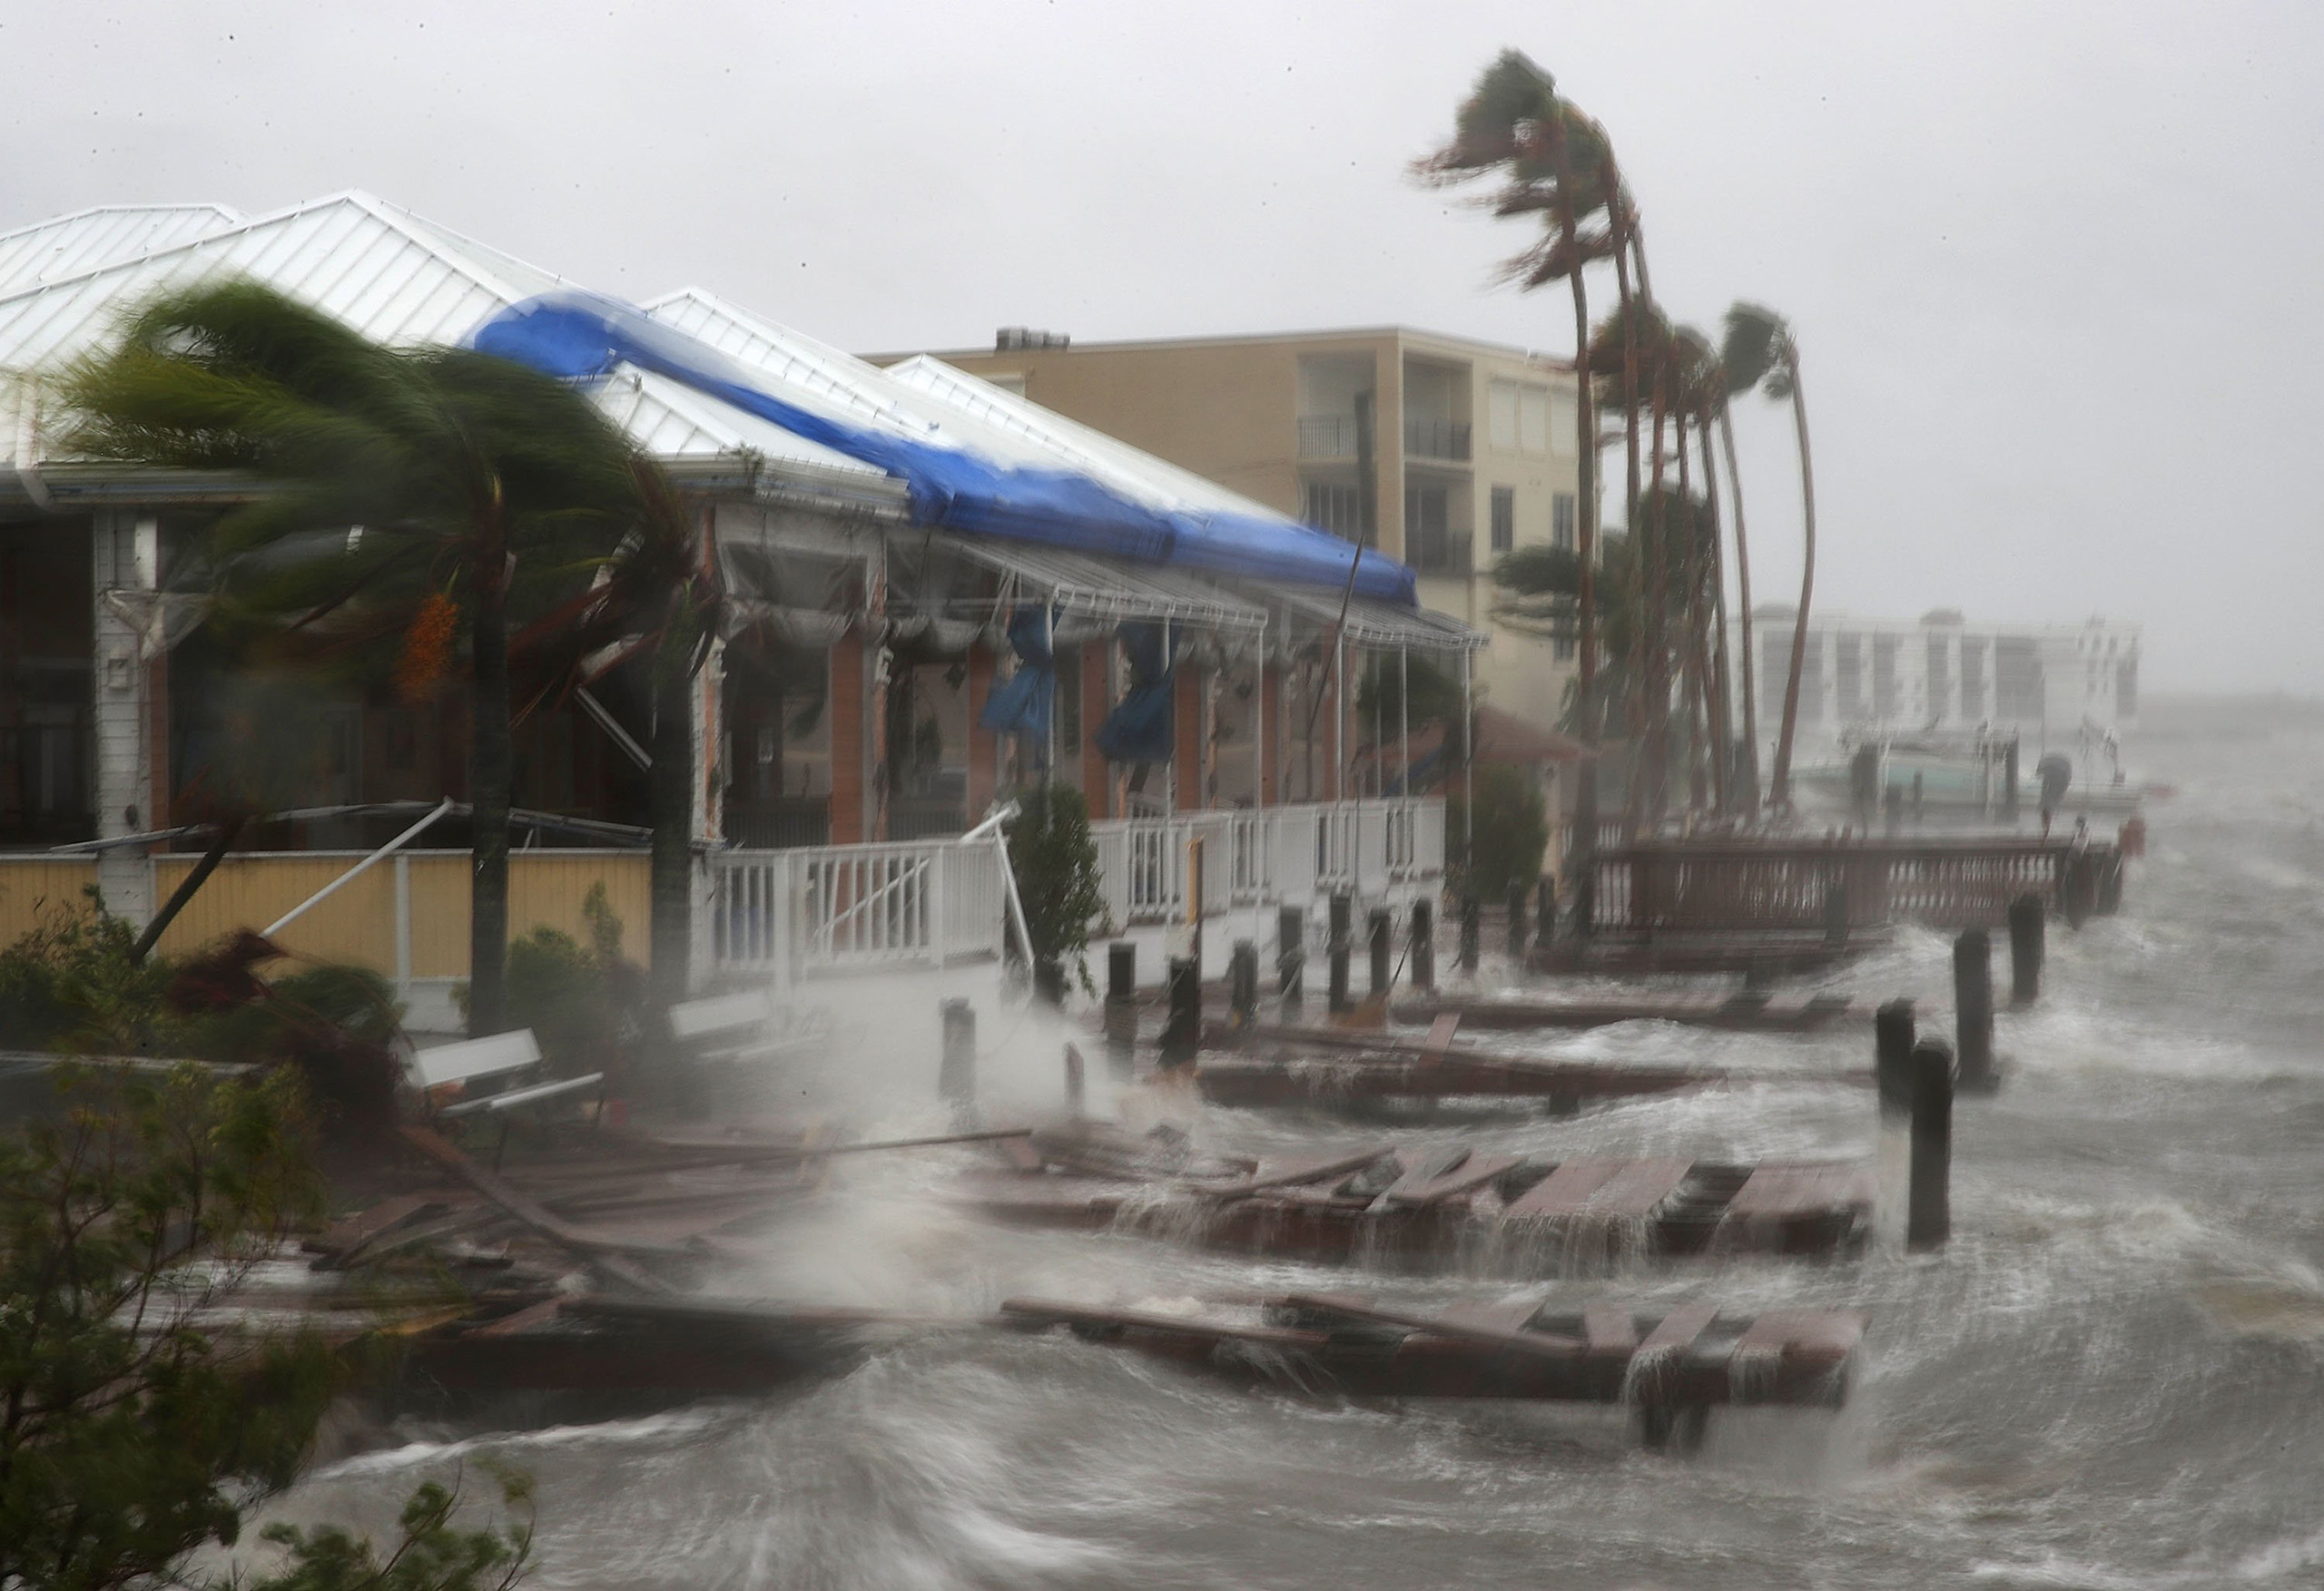 Heavy waves caused by Hurricane Matthew pound the boat docks at the Sunset Bar and Grill on Cocoa Beach, Fla., Oct. 7, 2016.